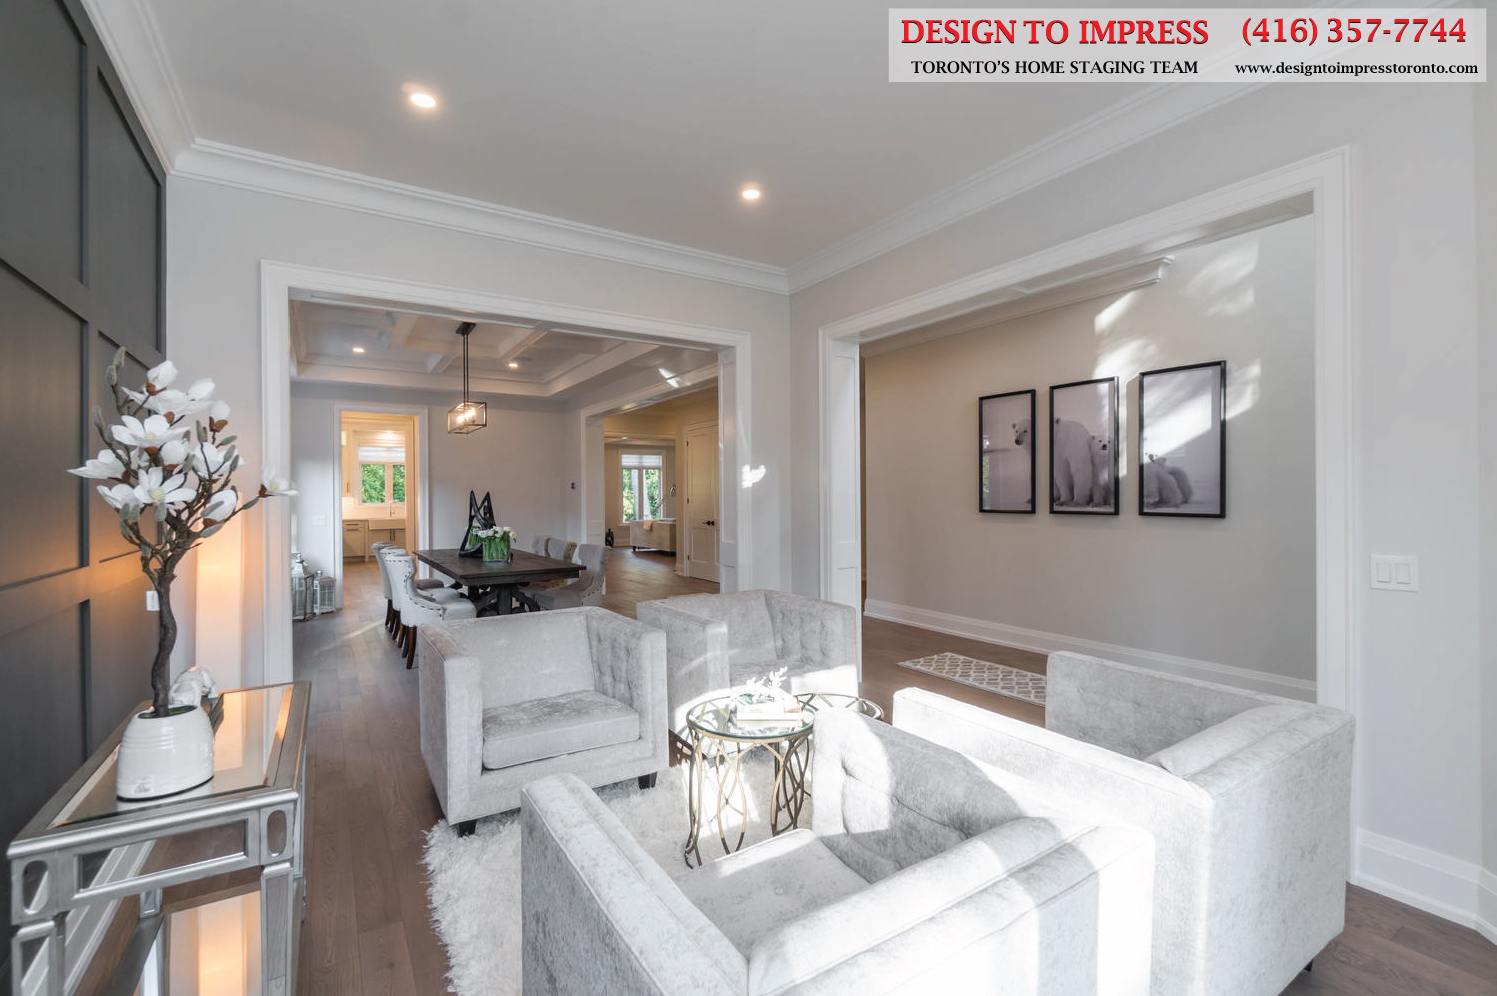 Living Room View, 383 Dyson, Toronto Home Staging